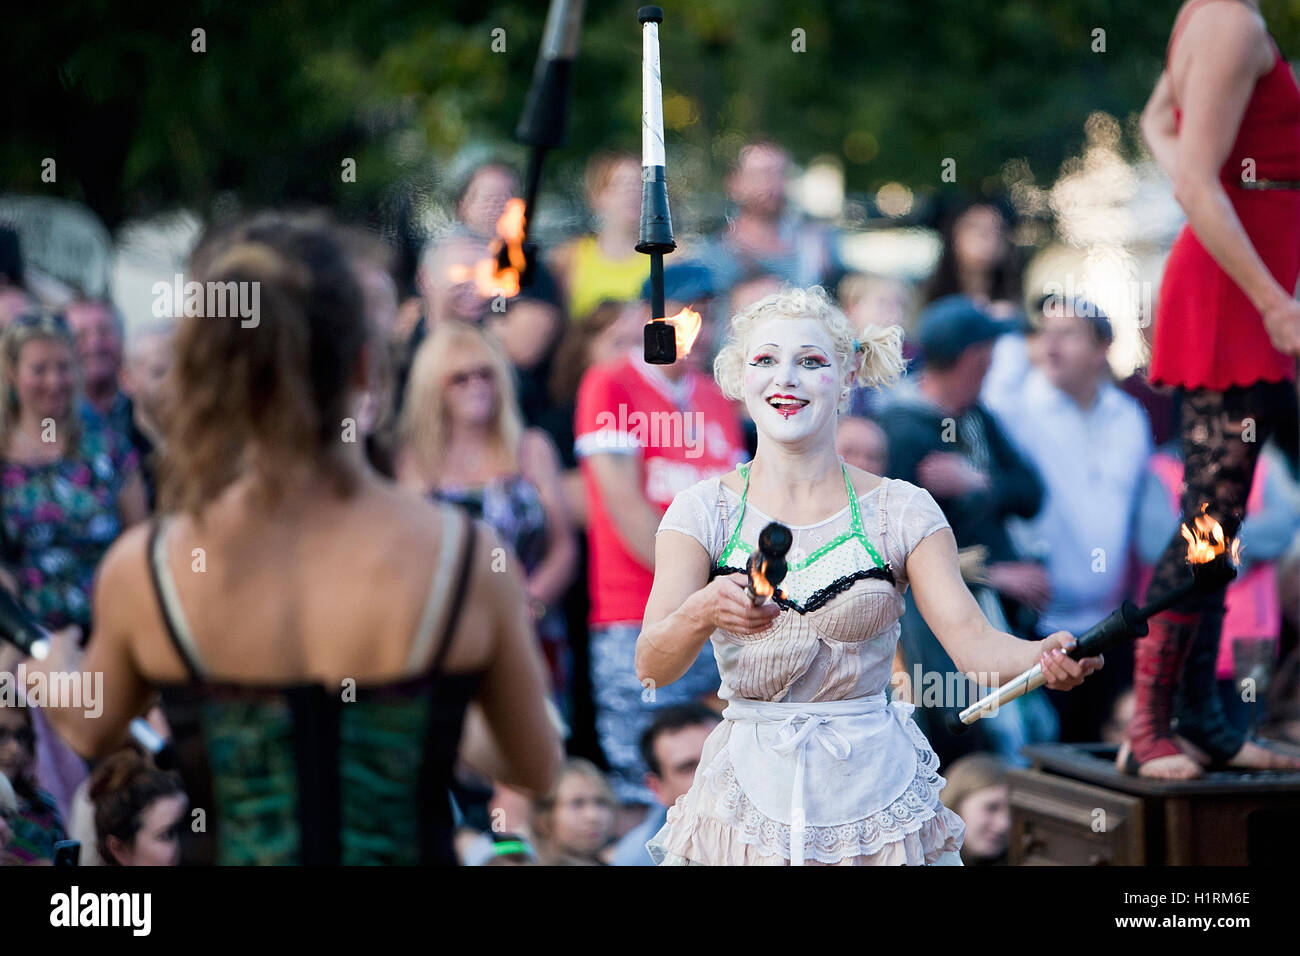 Fire juggling act from Le Cirque du Platzak at Great Yarmouth's Out There Festival in 2015. - Stock Image